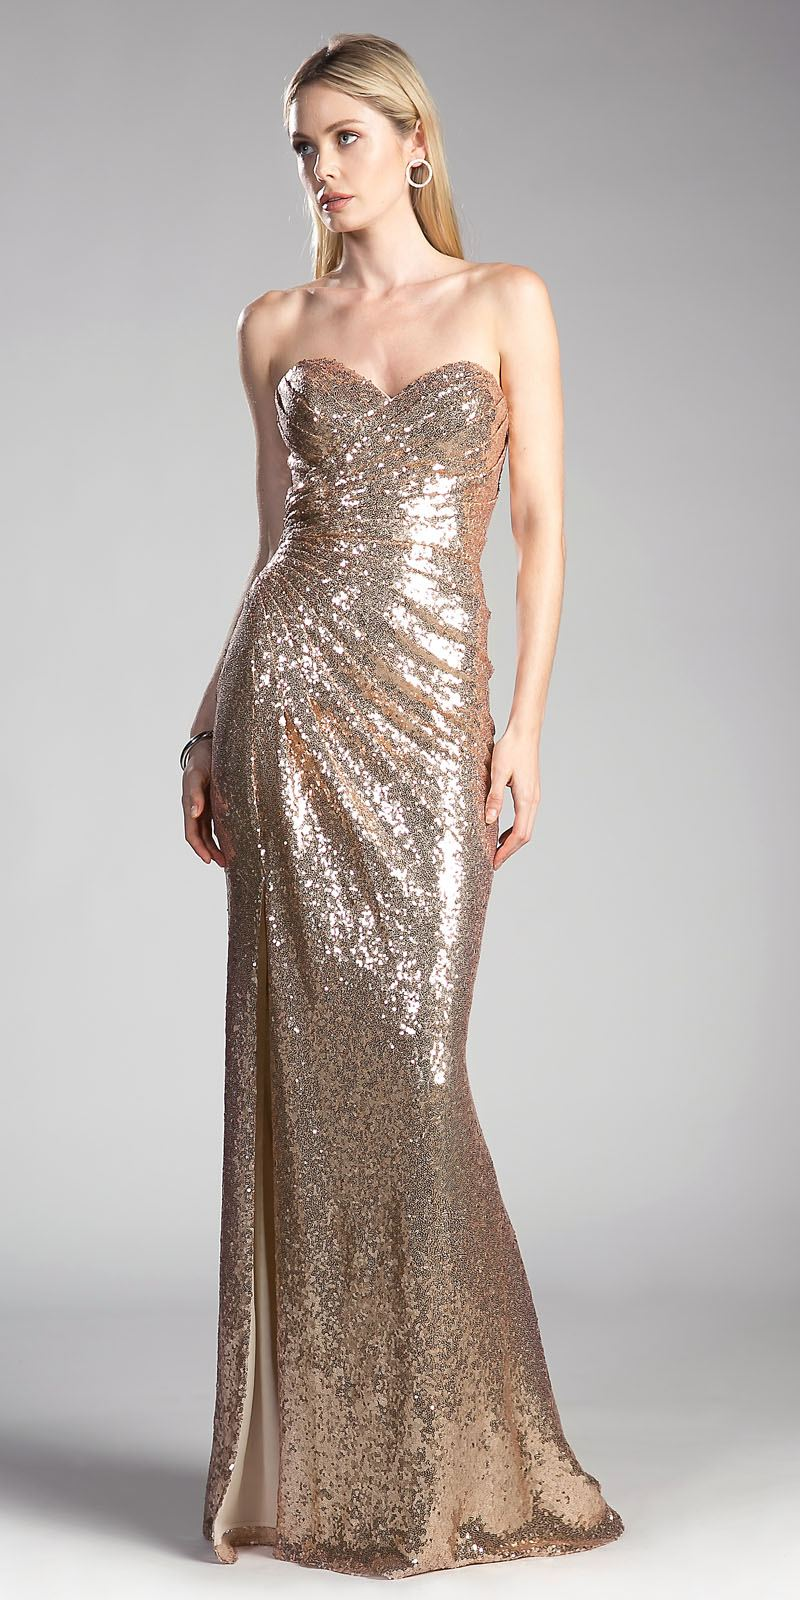 Cinderella Divine CH561 Sequins Strapless Long Prom Dress Sweetheart ...